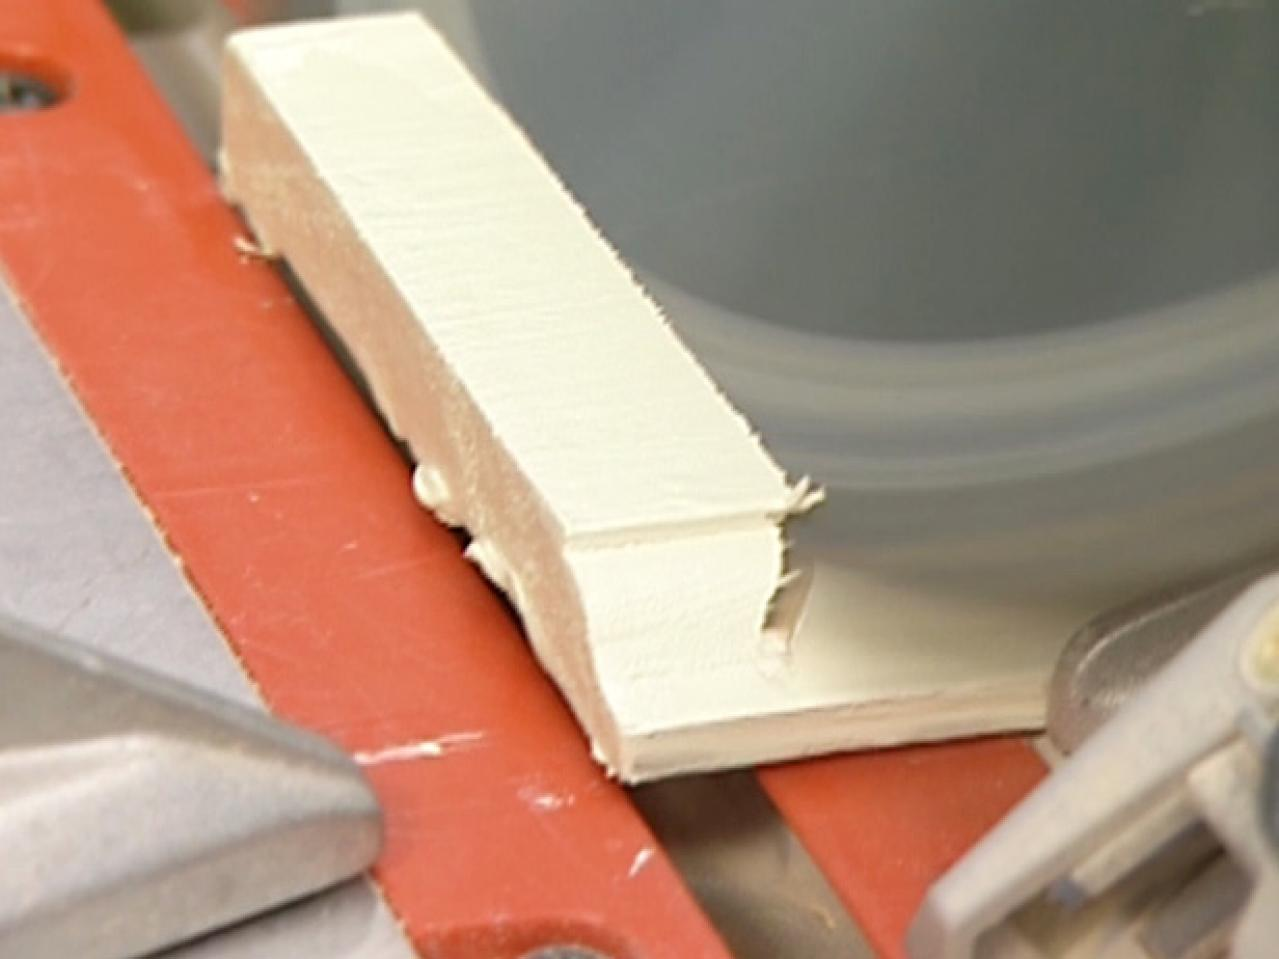 How to cut base molding in place - Step 3 Dttr302_miter Cut Baseboard